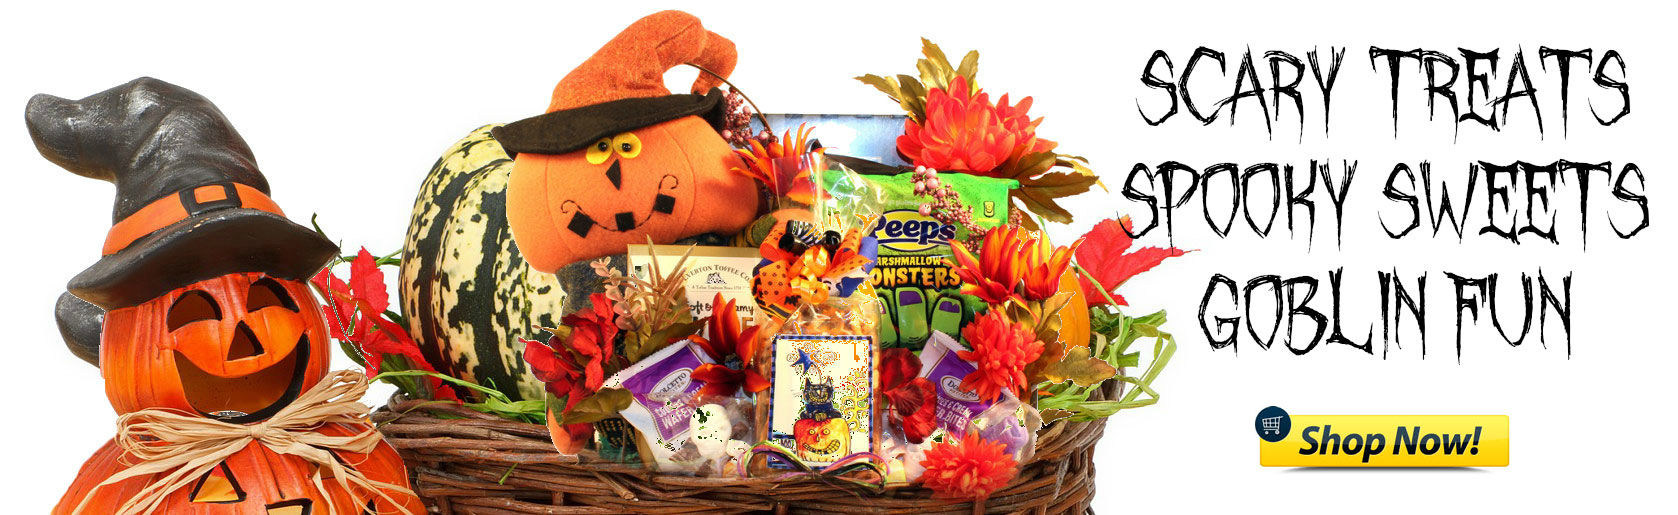 Halloween Gifts and Baskets